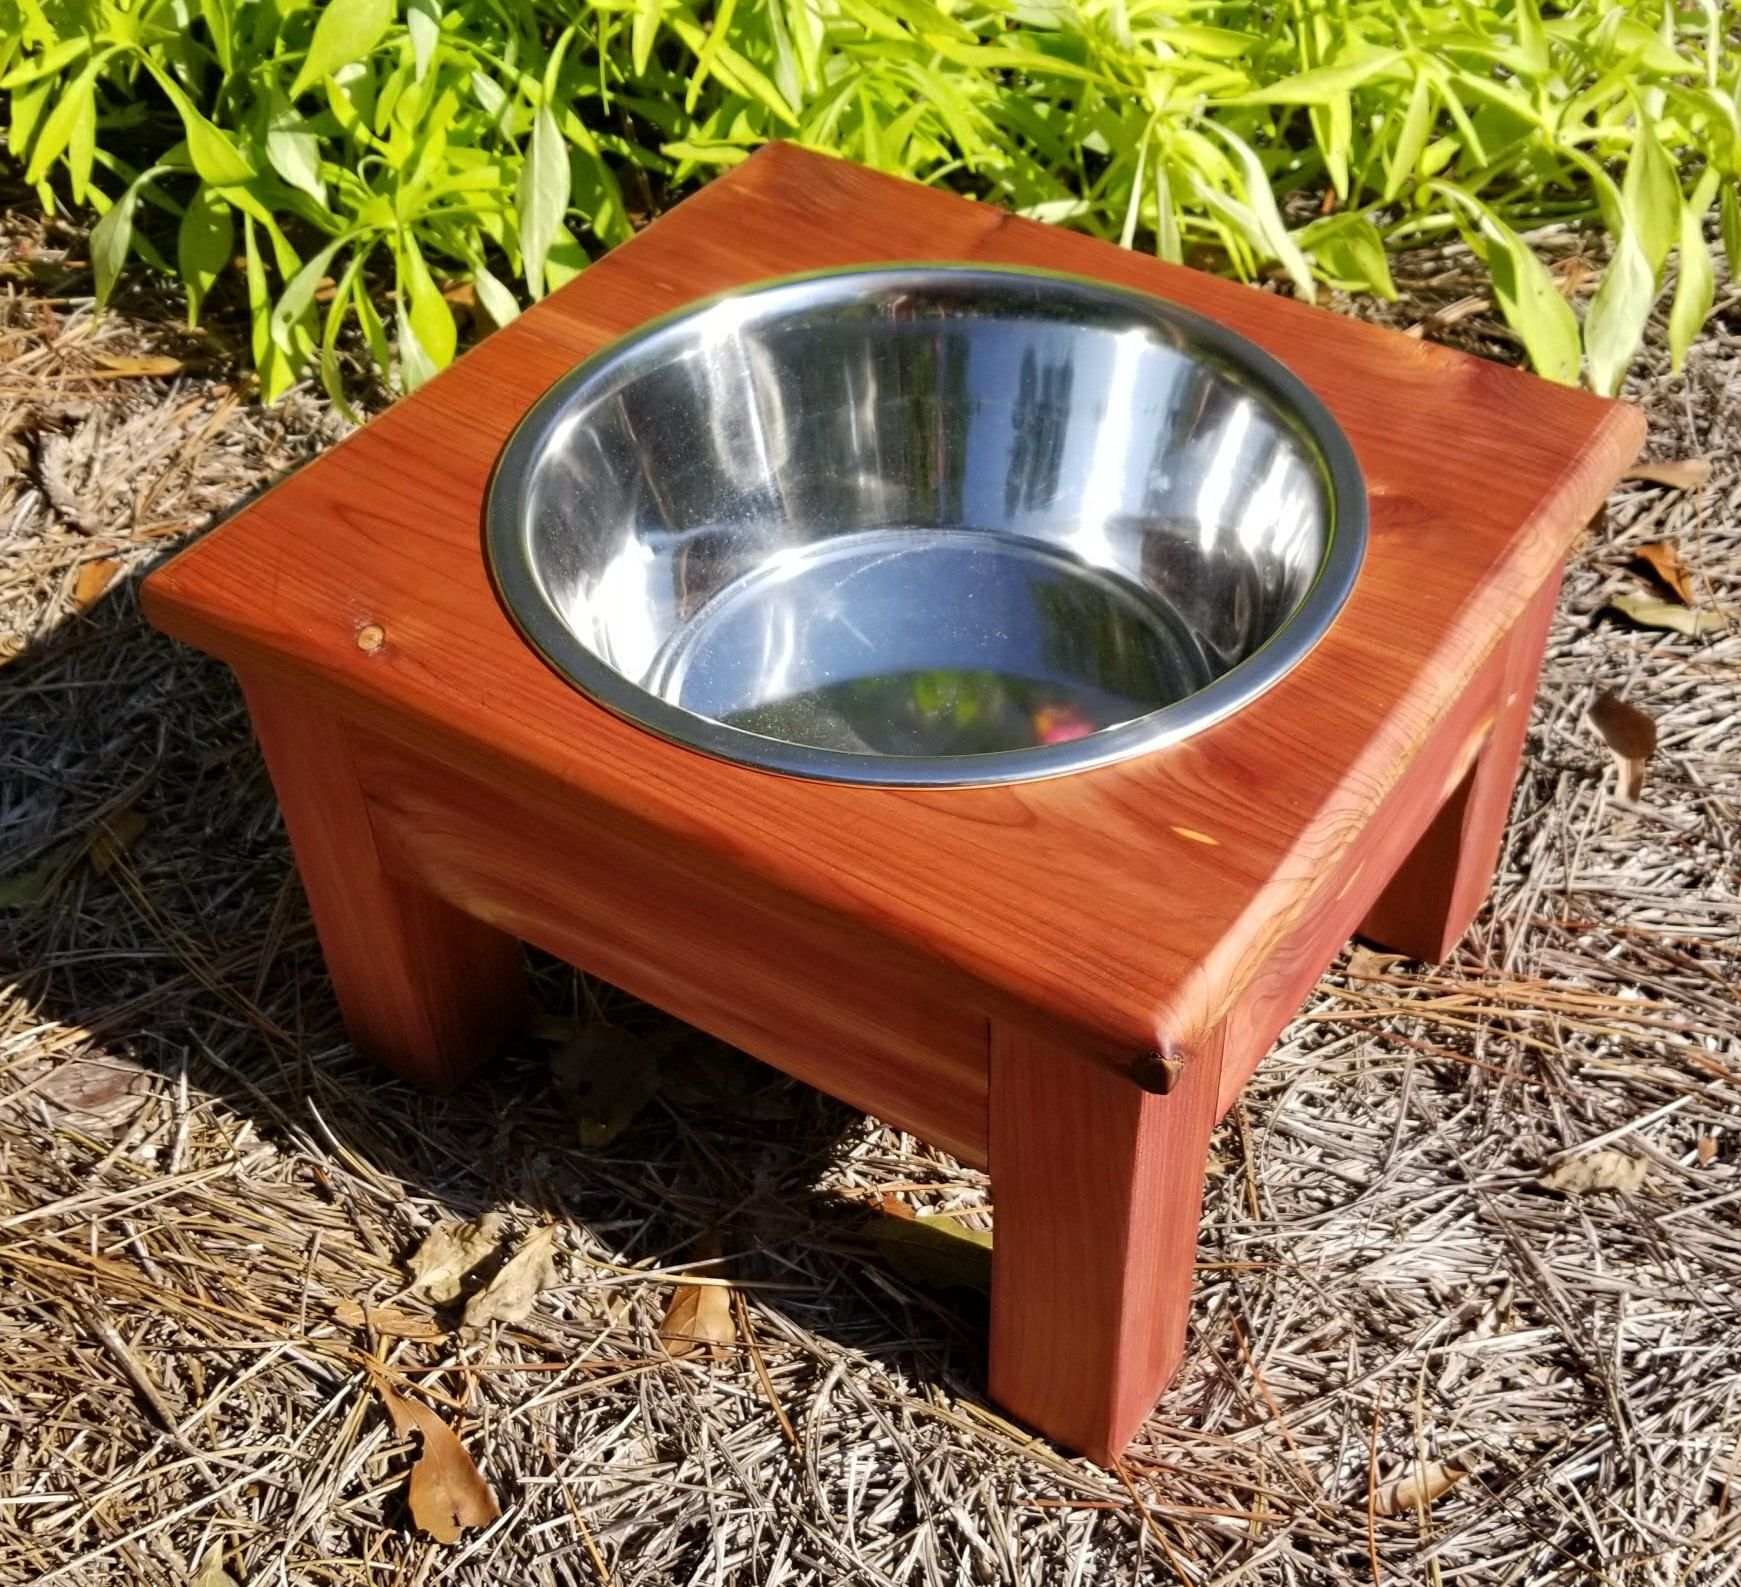 Medium Elevated Dog Bowl, Cedar, Elevated Pet Feeder, 1 Bowl Feeder,One Bowl Dog Feeder,Personalized Dog Feeder,Pet Feeder,Raised Dog Feeder